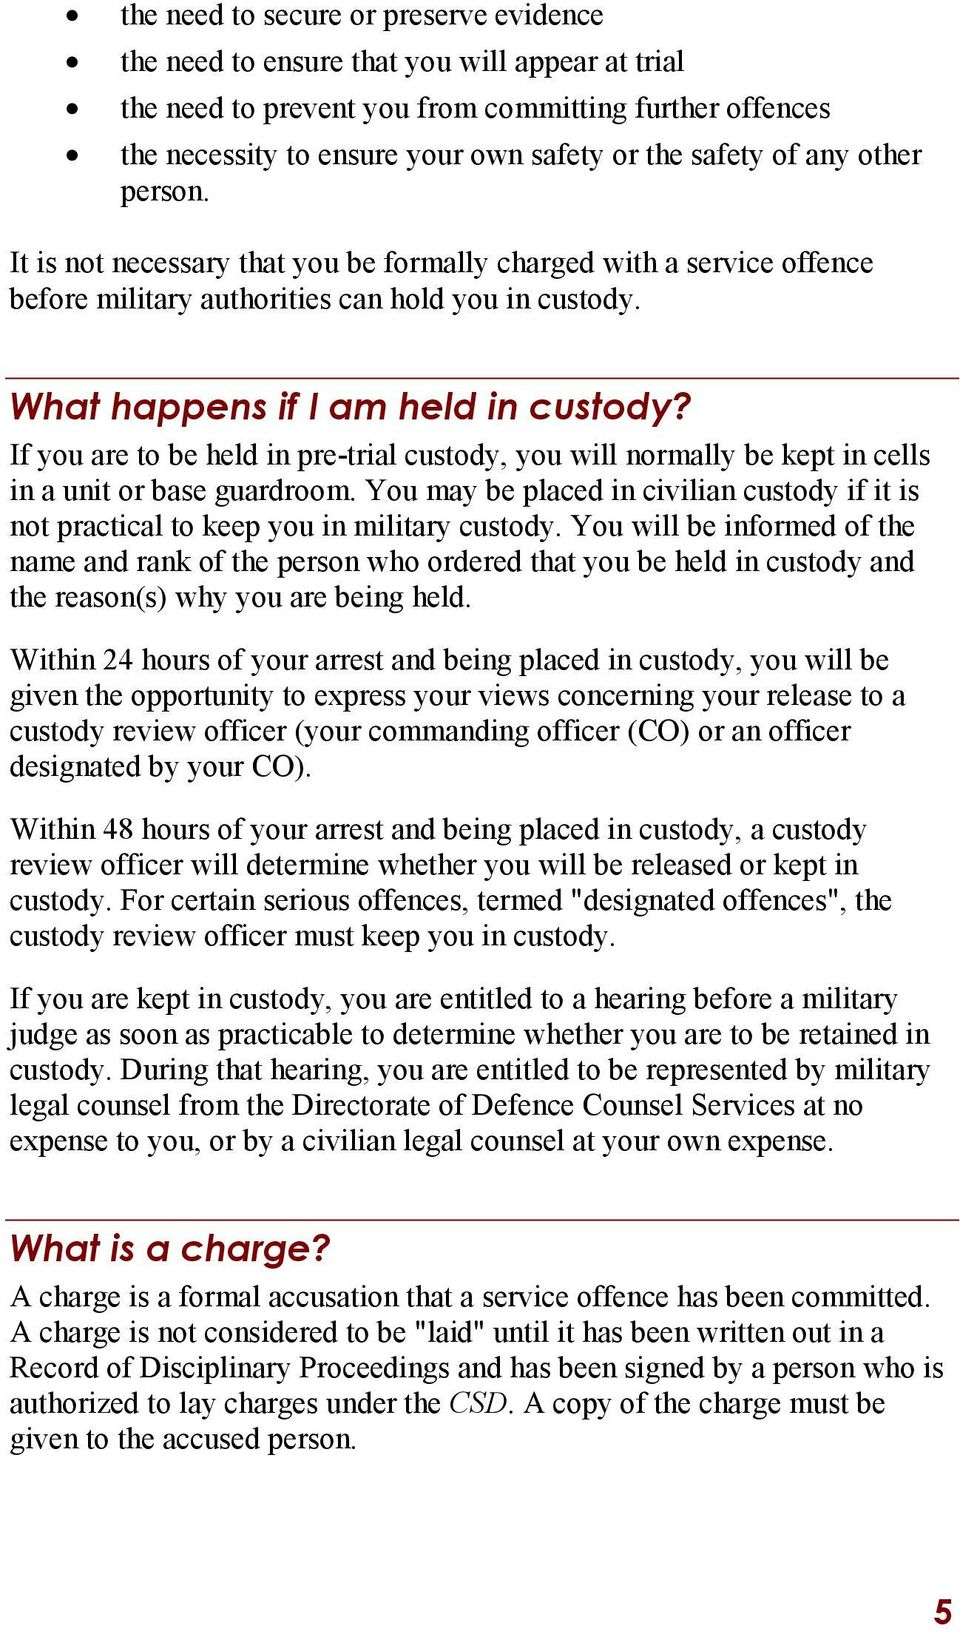 If you are to be held in pre-trial custody, you will normally be kept in cells in a unit or base guardroom.